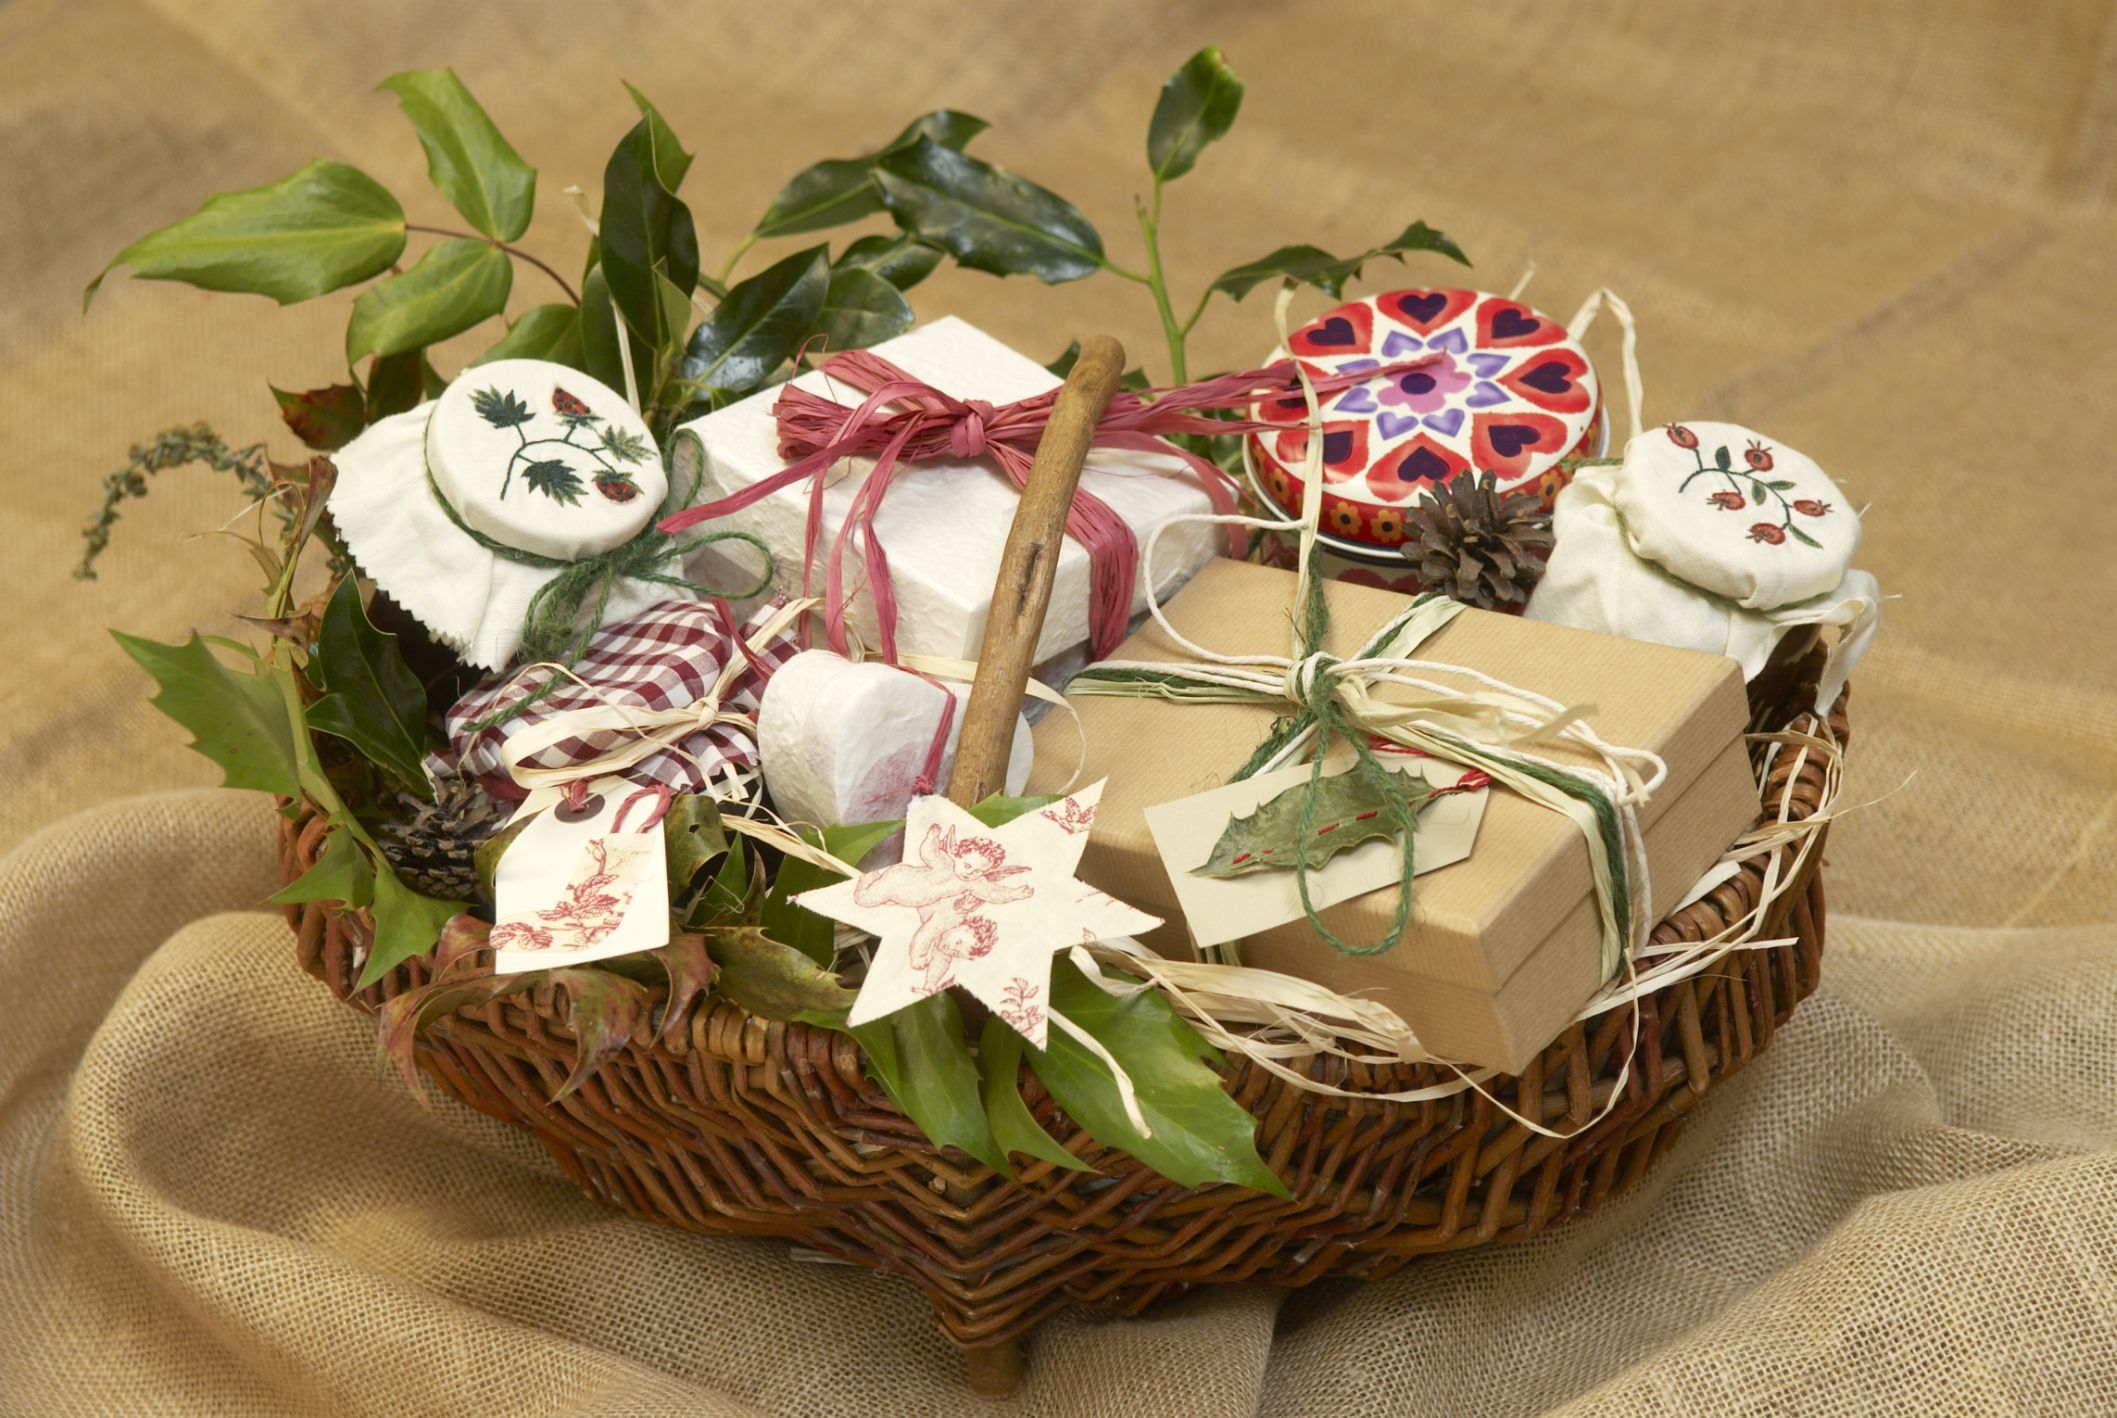 Practical and Affordable Gifts for Entrepreneurs